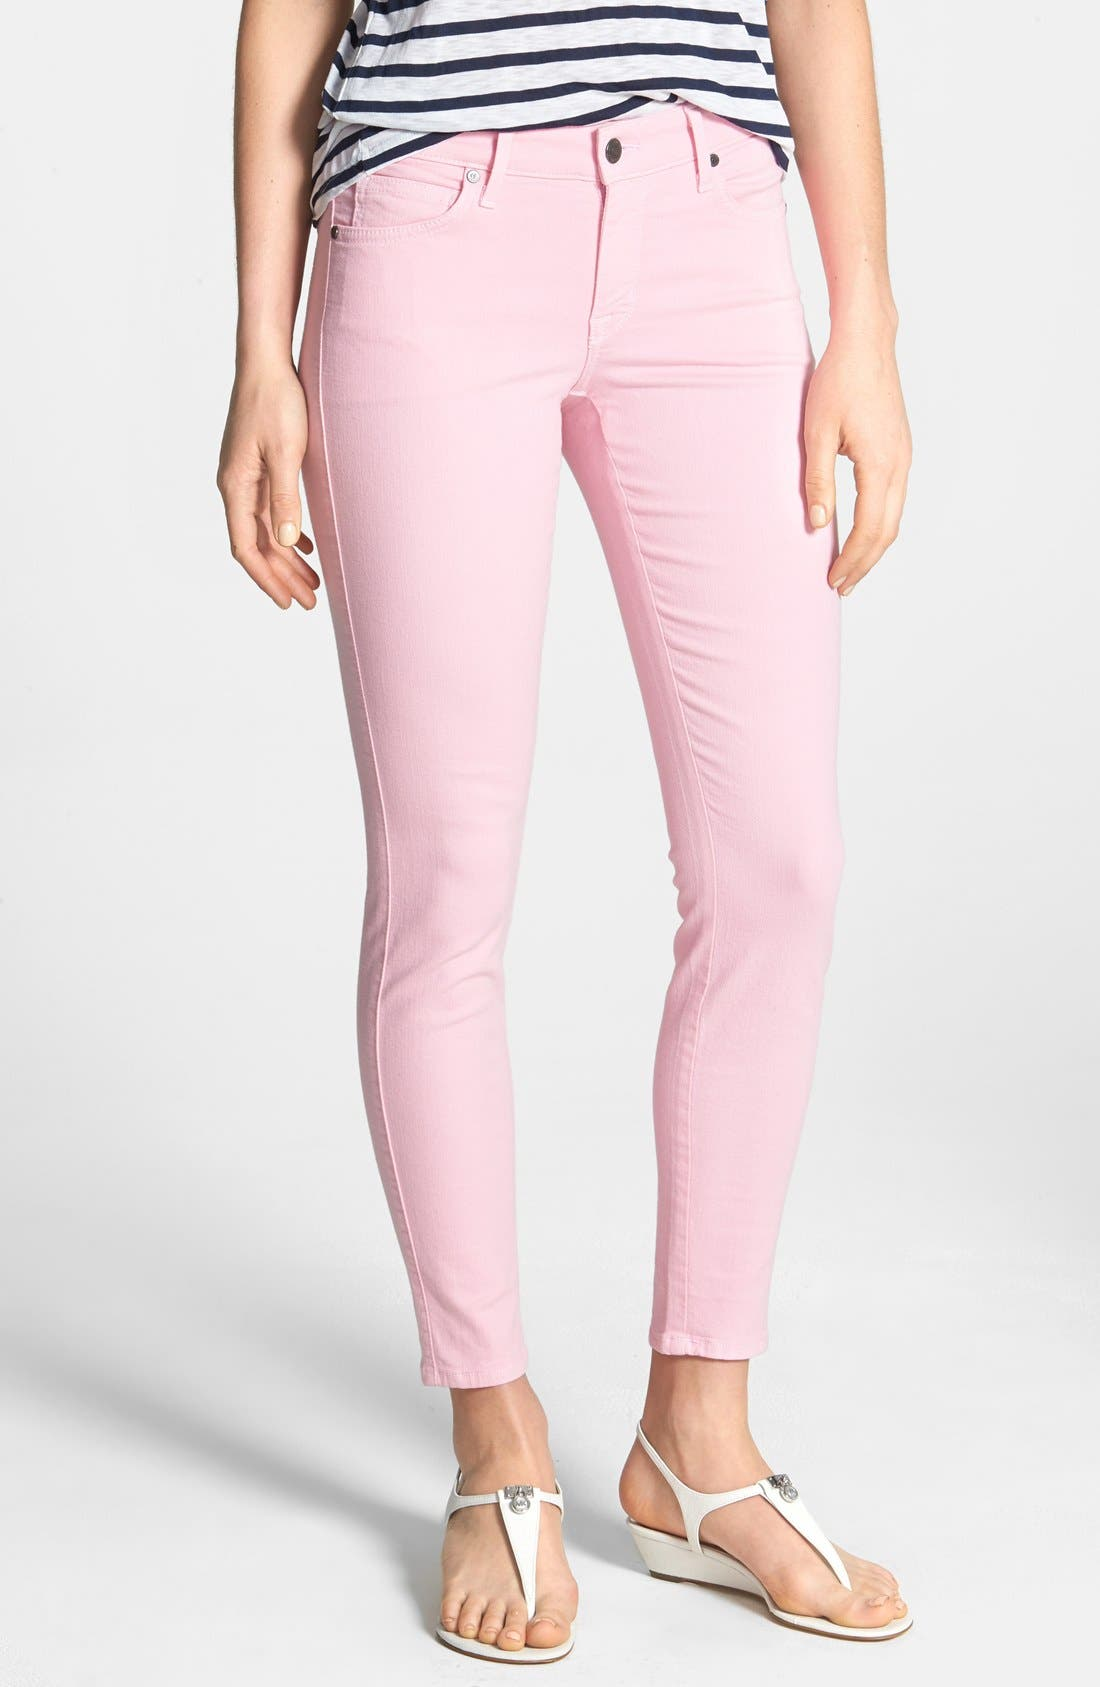 Main Image - CJ by Cookie Johnson 'Wisdom' Colored Ankle Skinny Jeans (Pink)